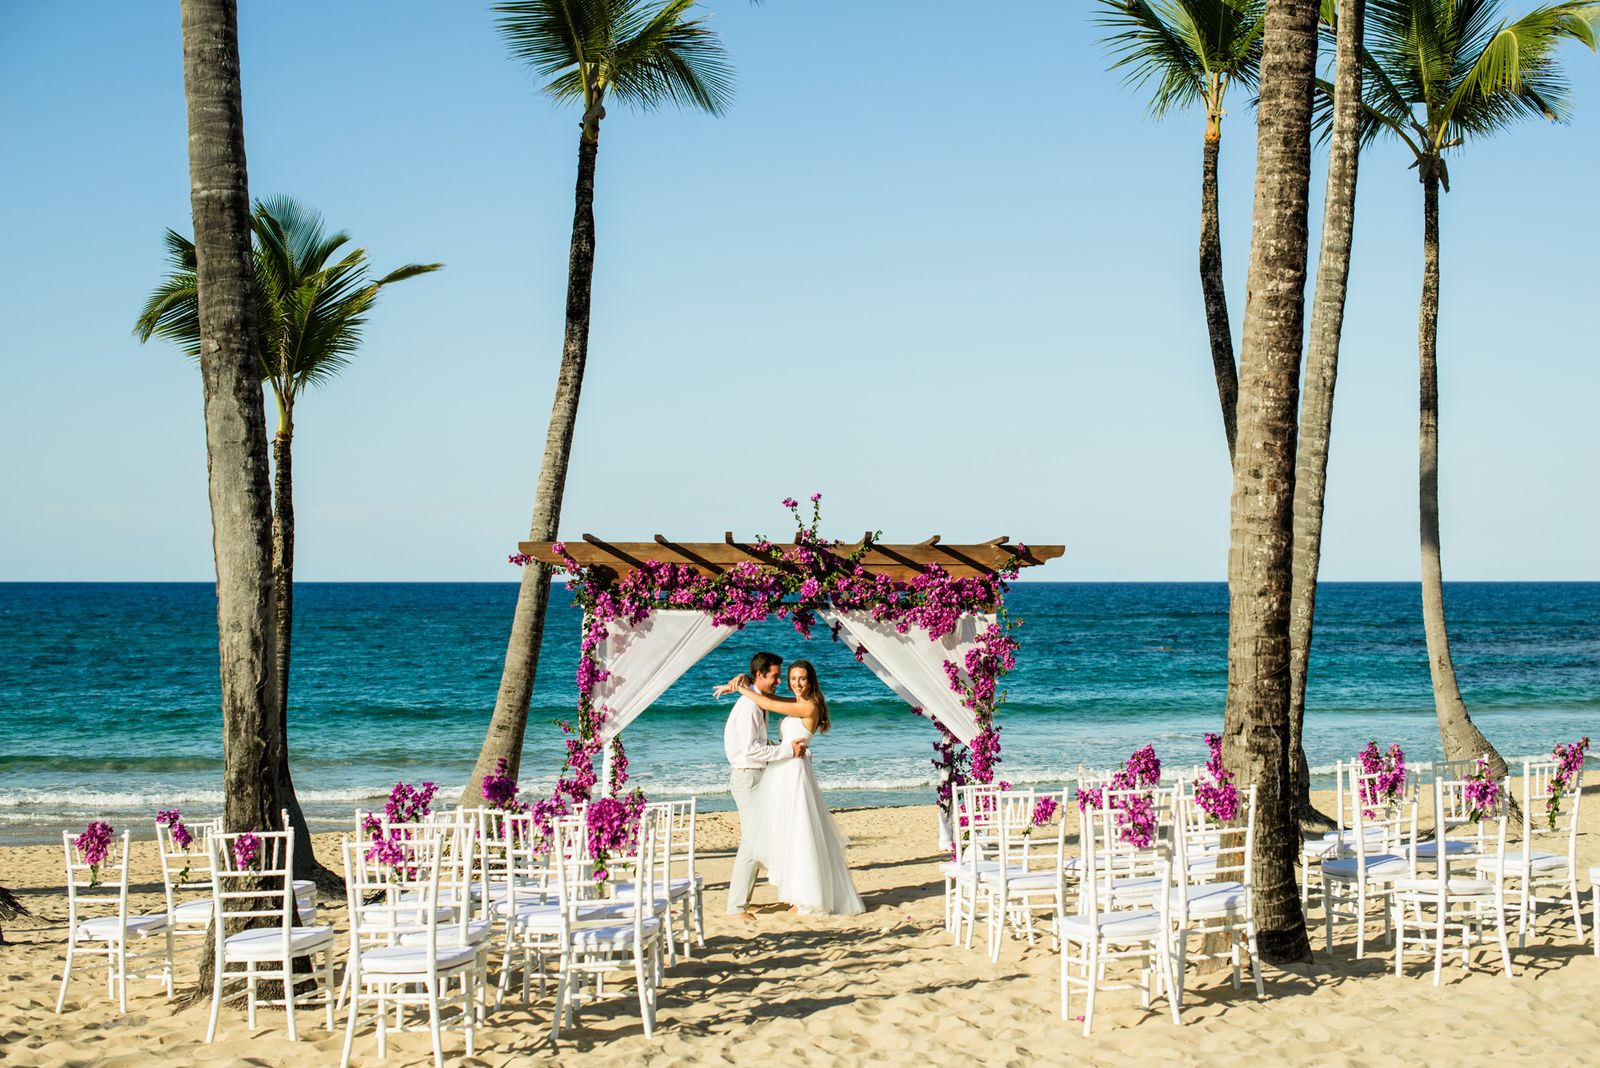 Plan the Best Caribbean Destination Wedding